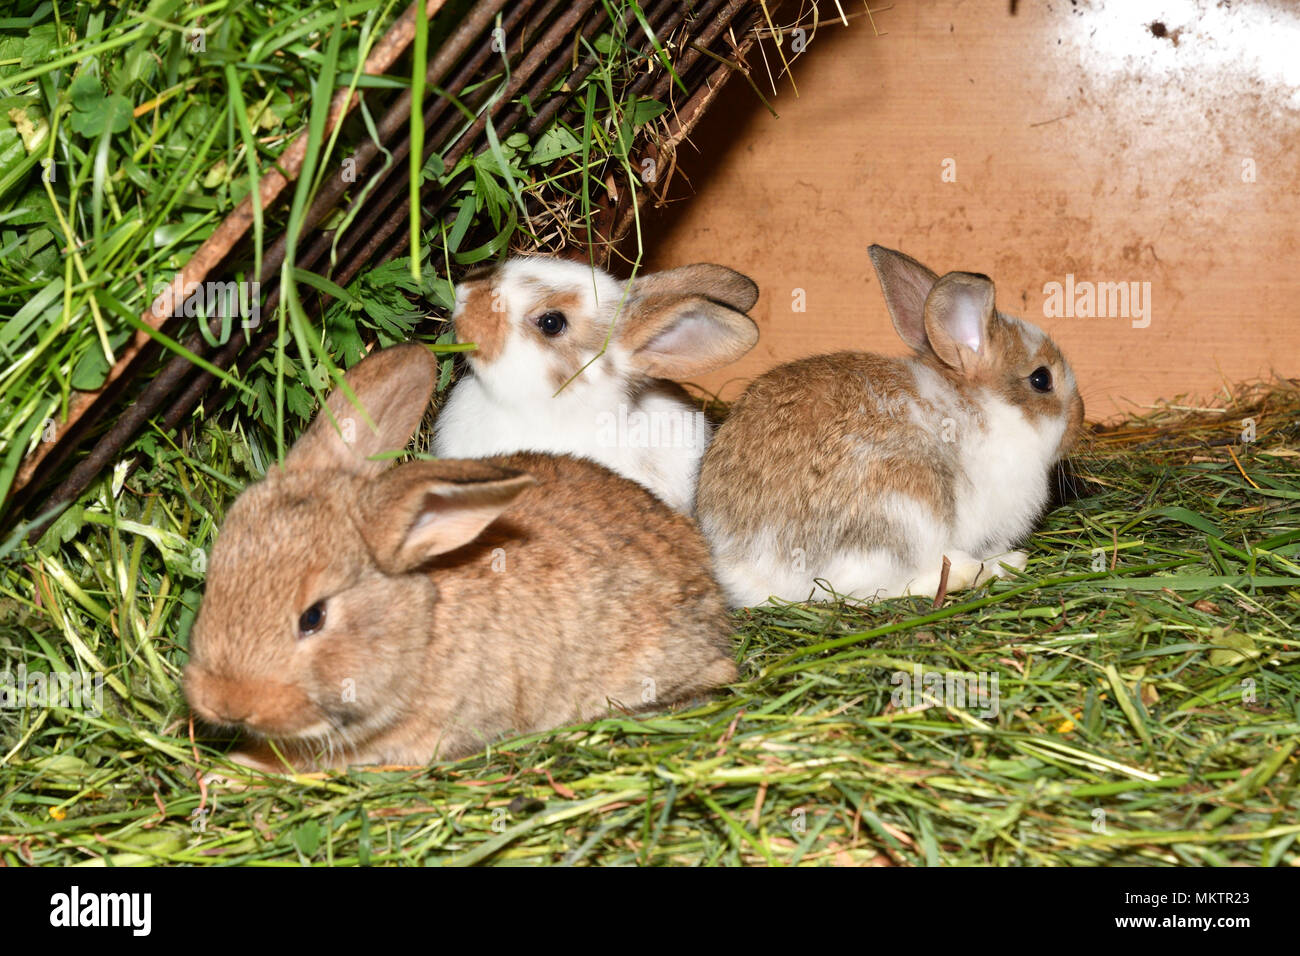 family rabbit mutter and little cutie watching around his hay nest close up portrait - Stock Image